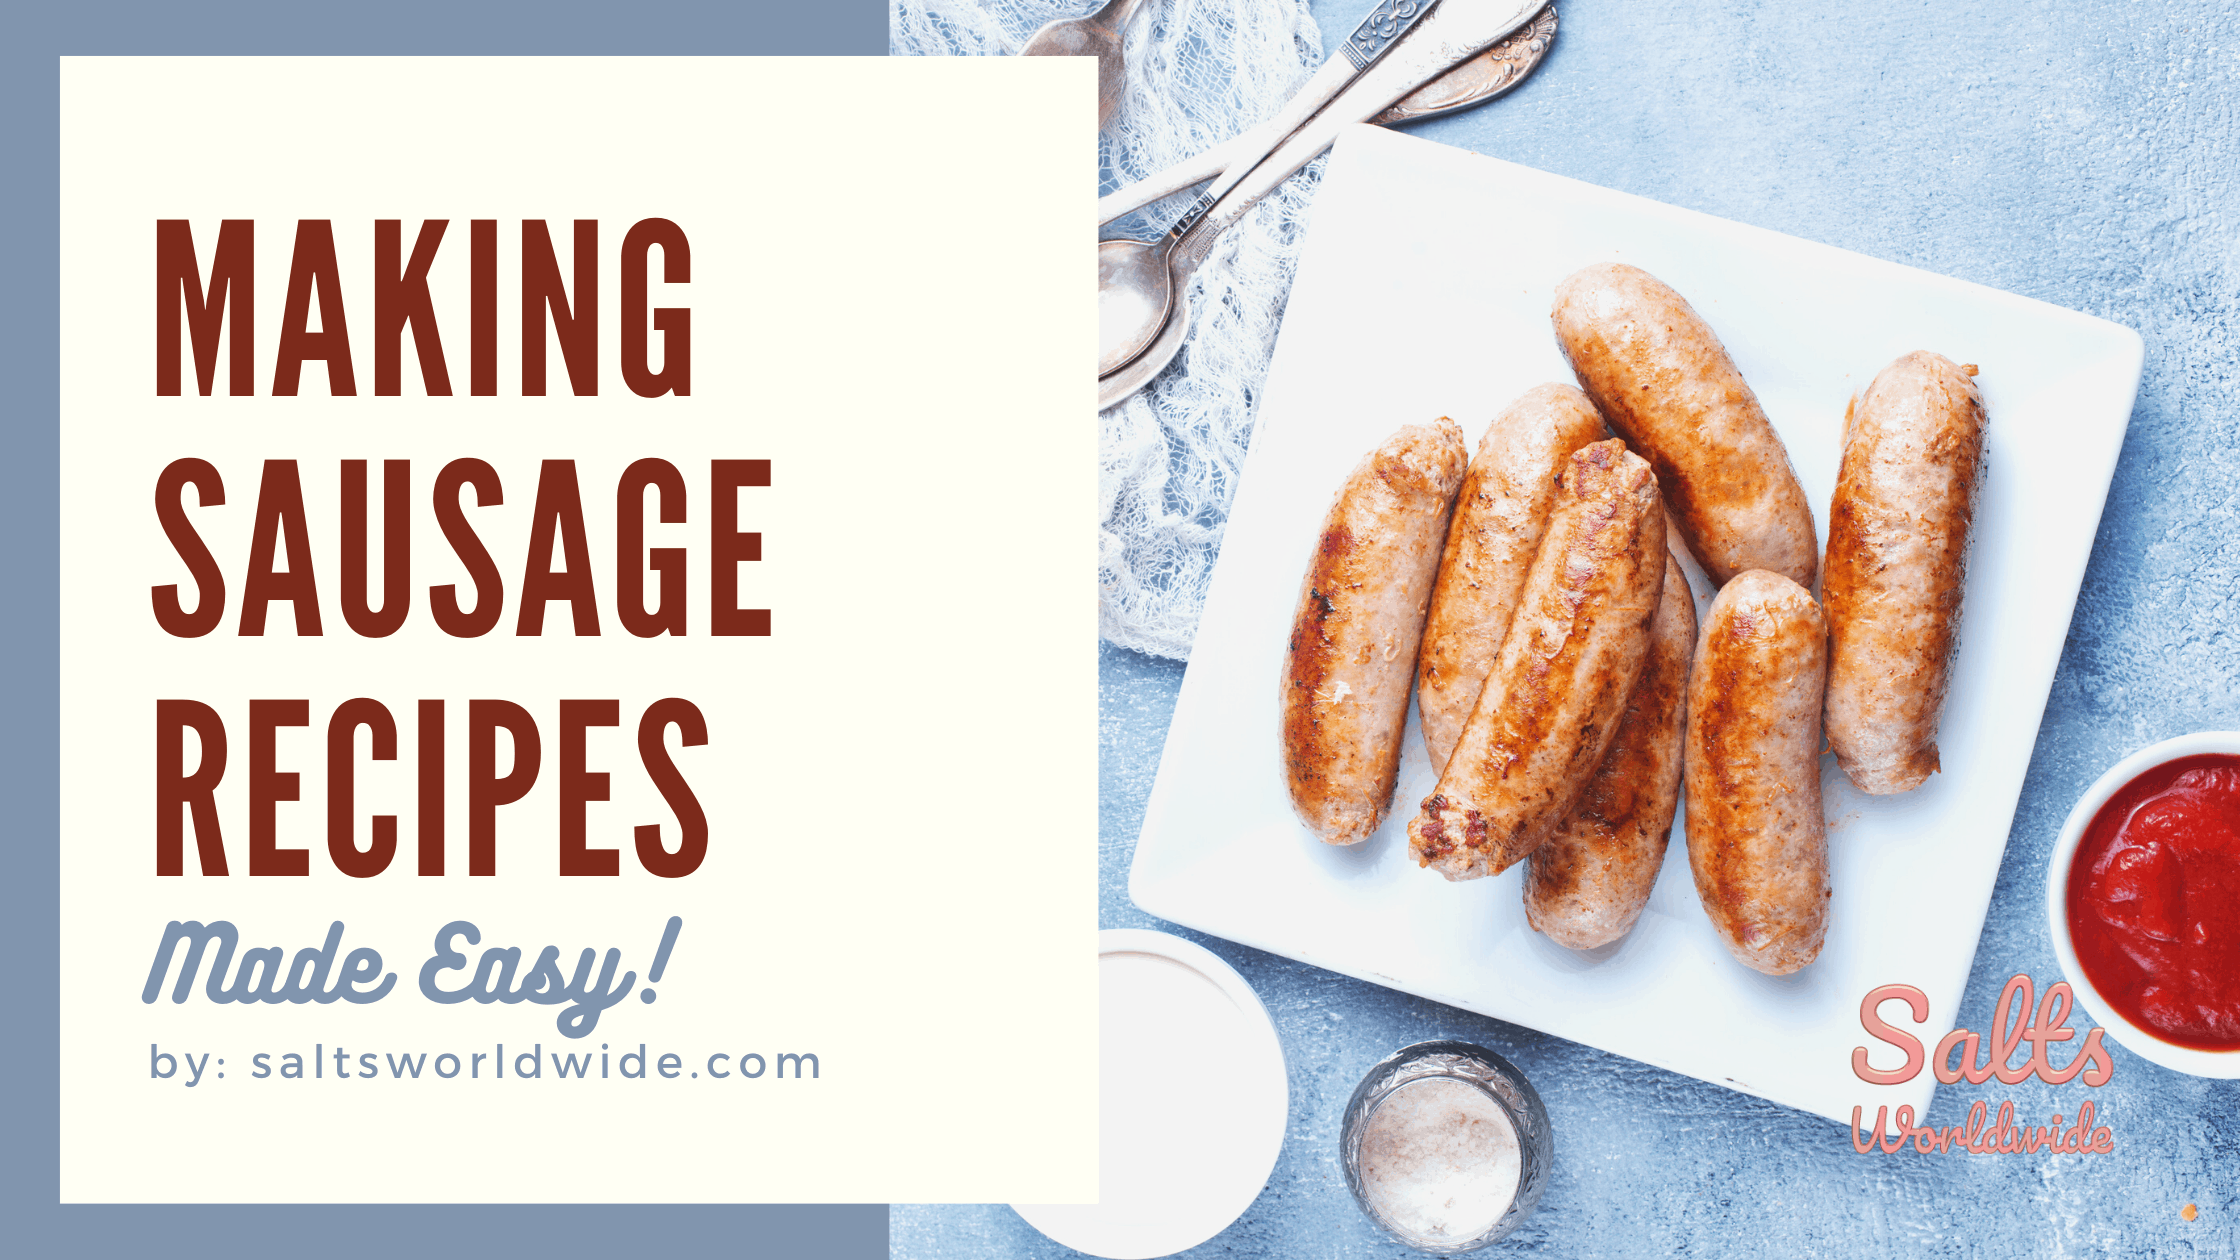 Making Sausage Recipes Made Easy